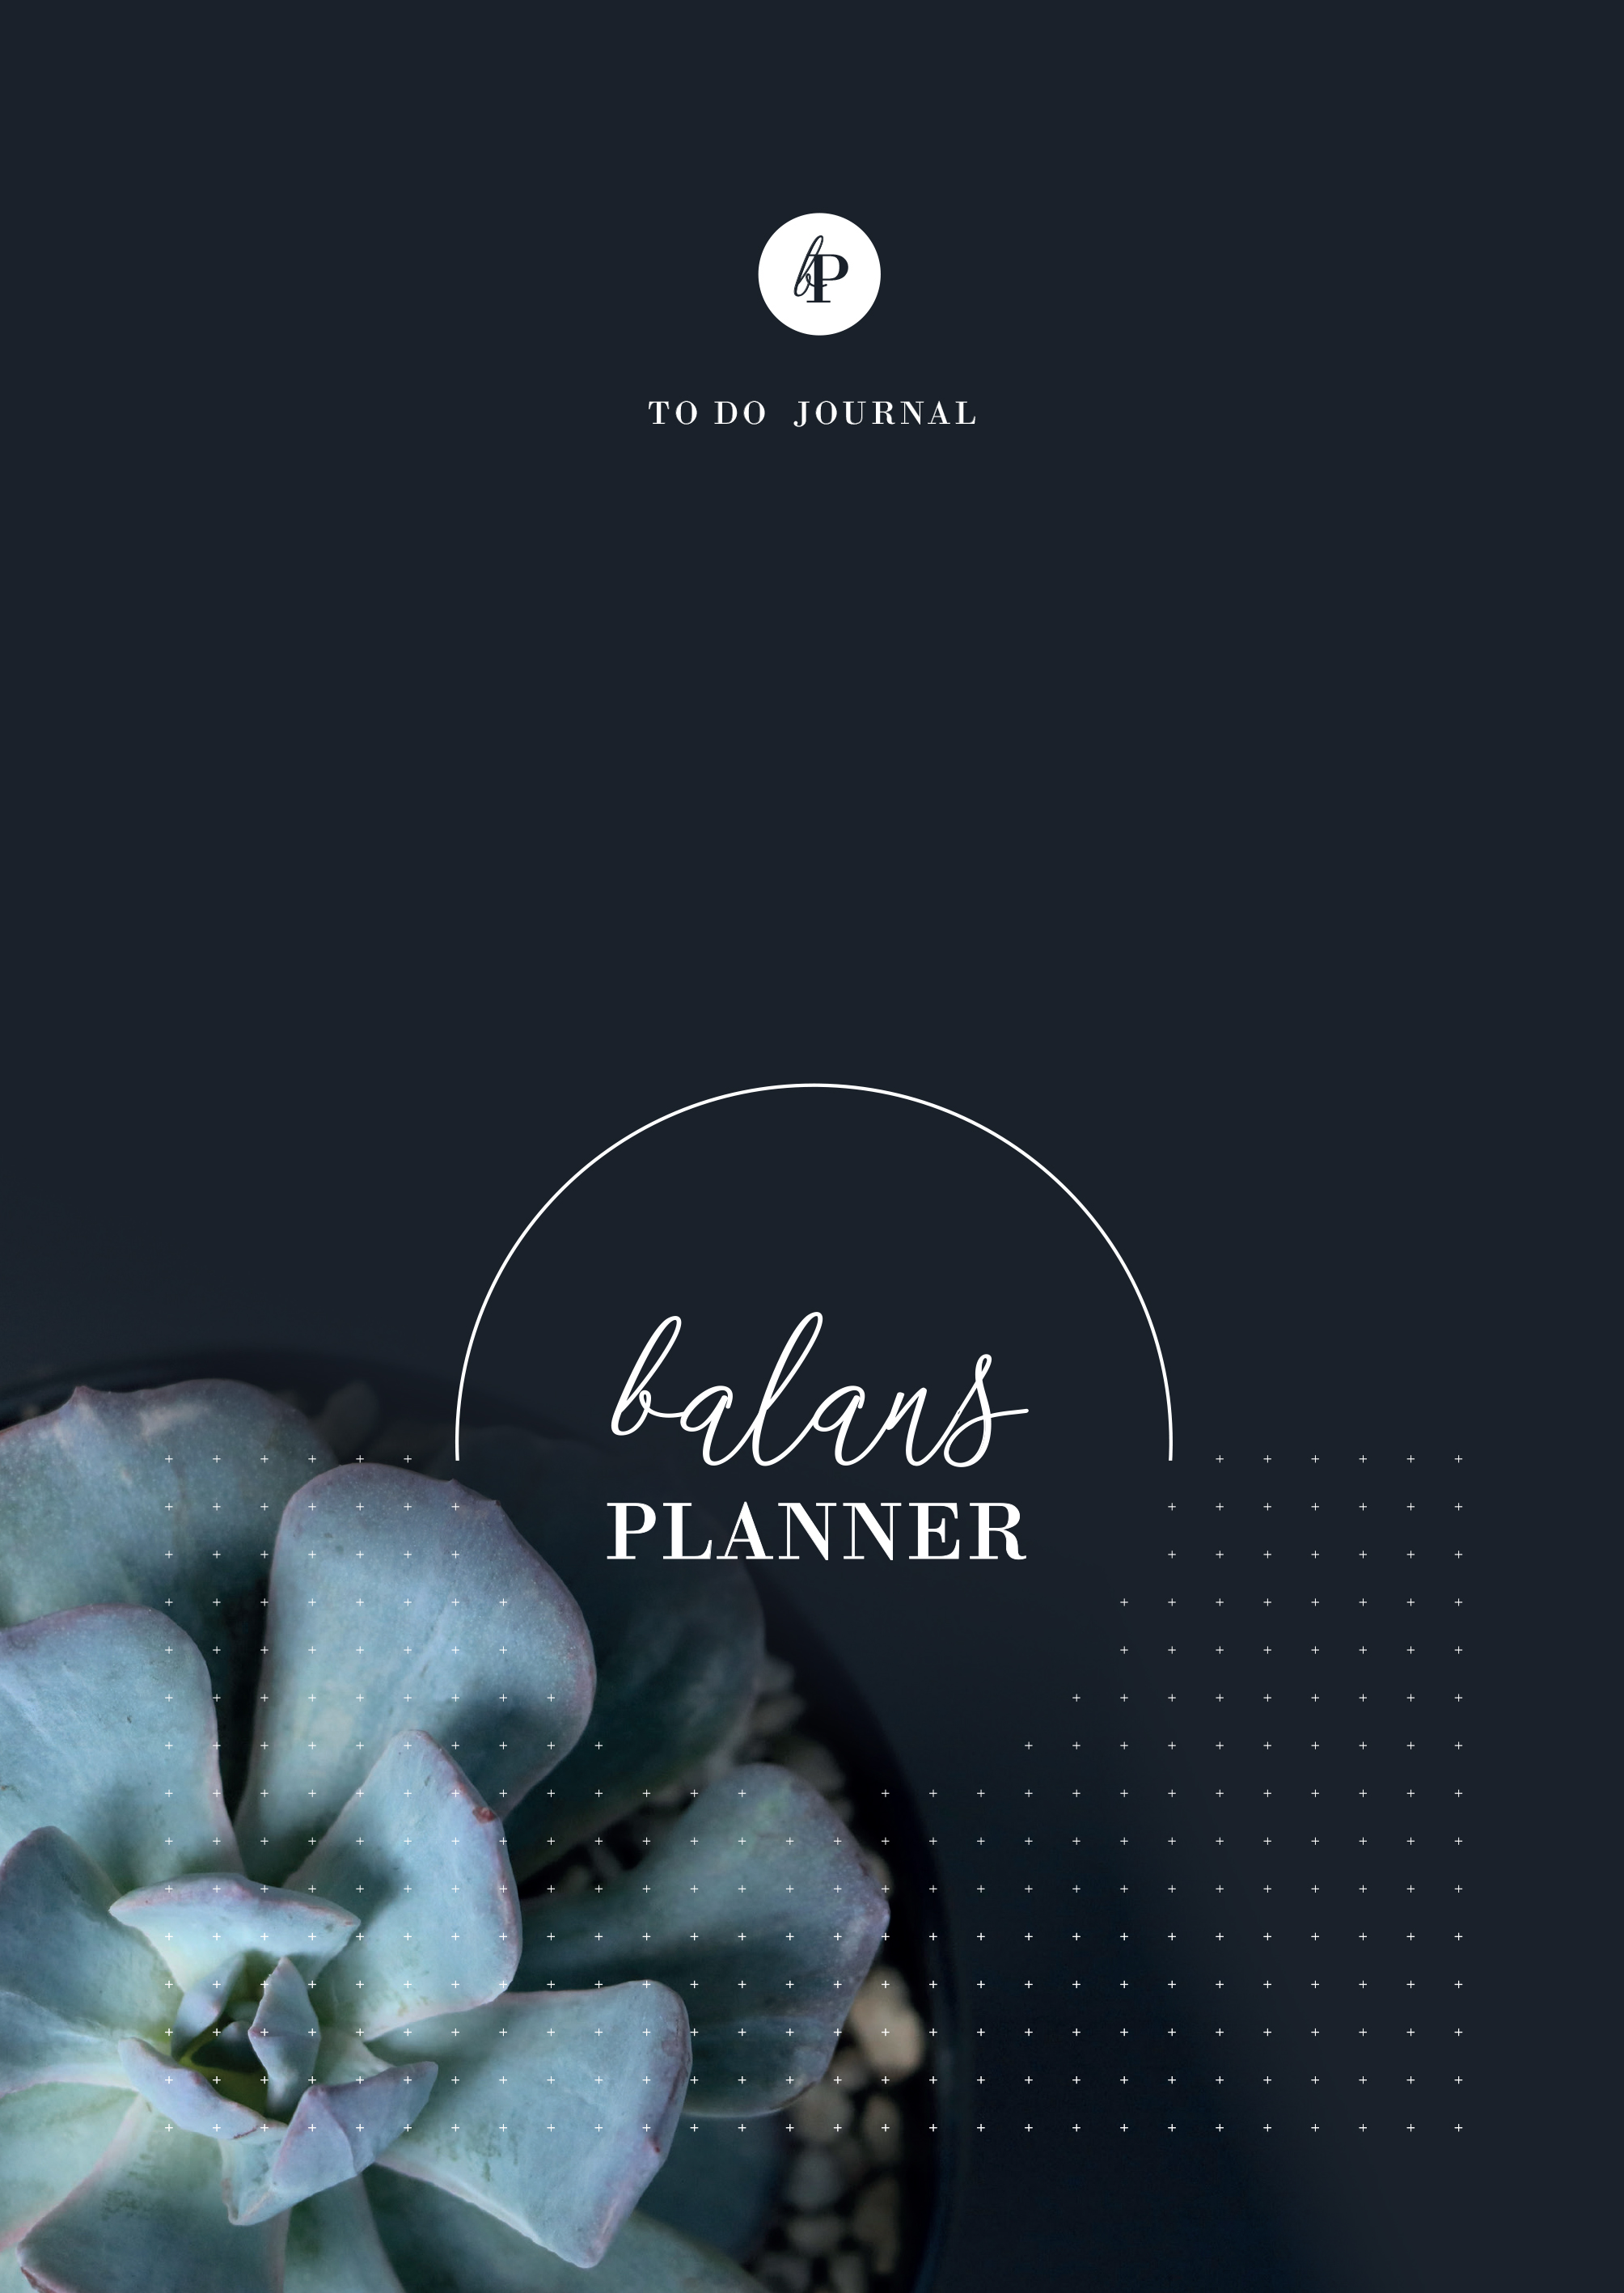 balans planner the new black